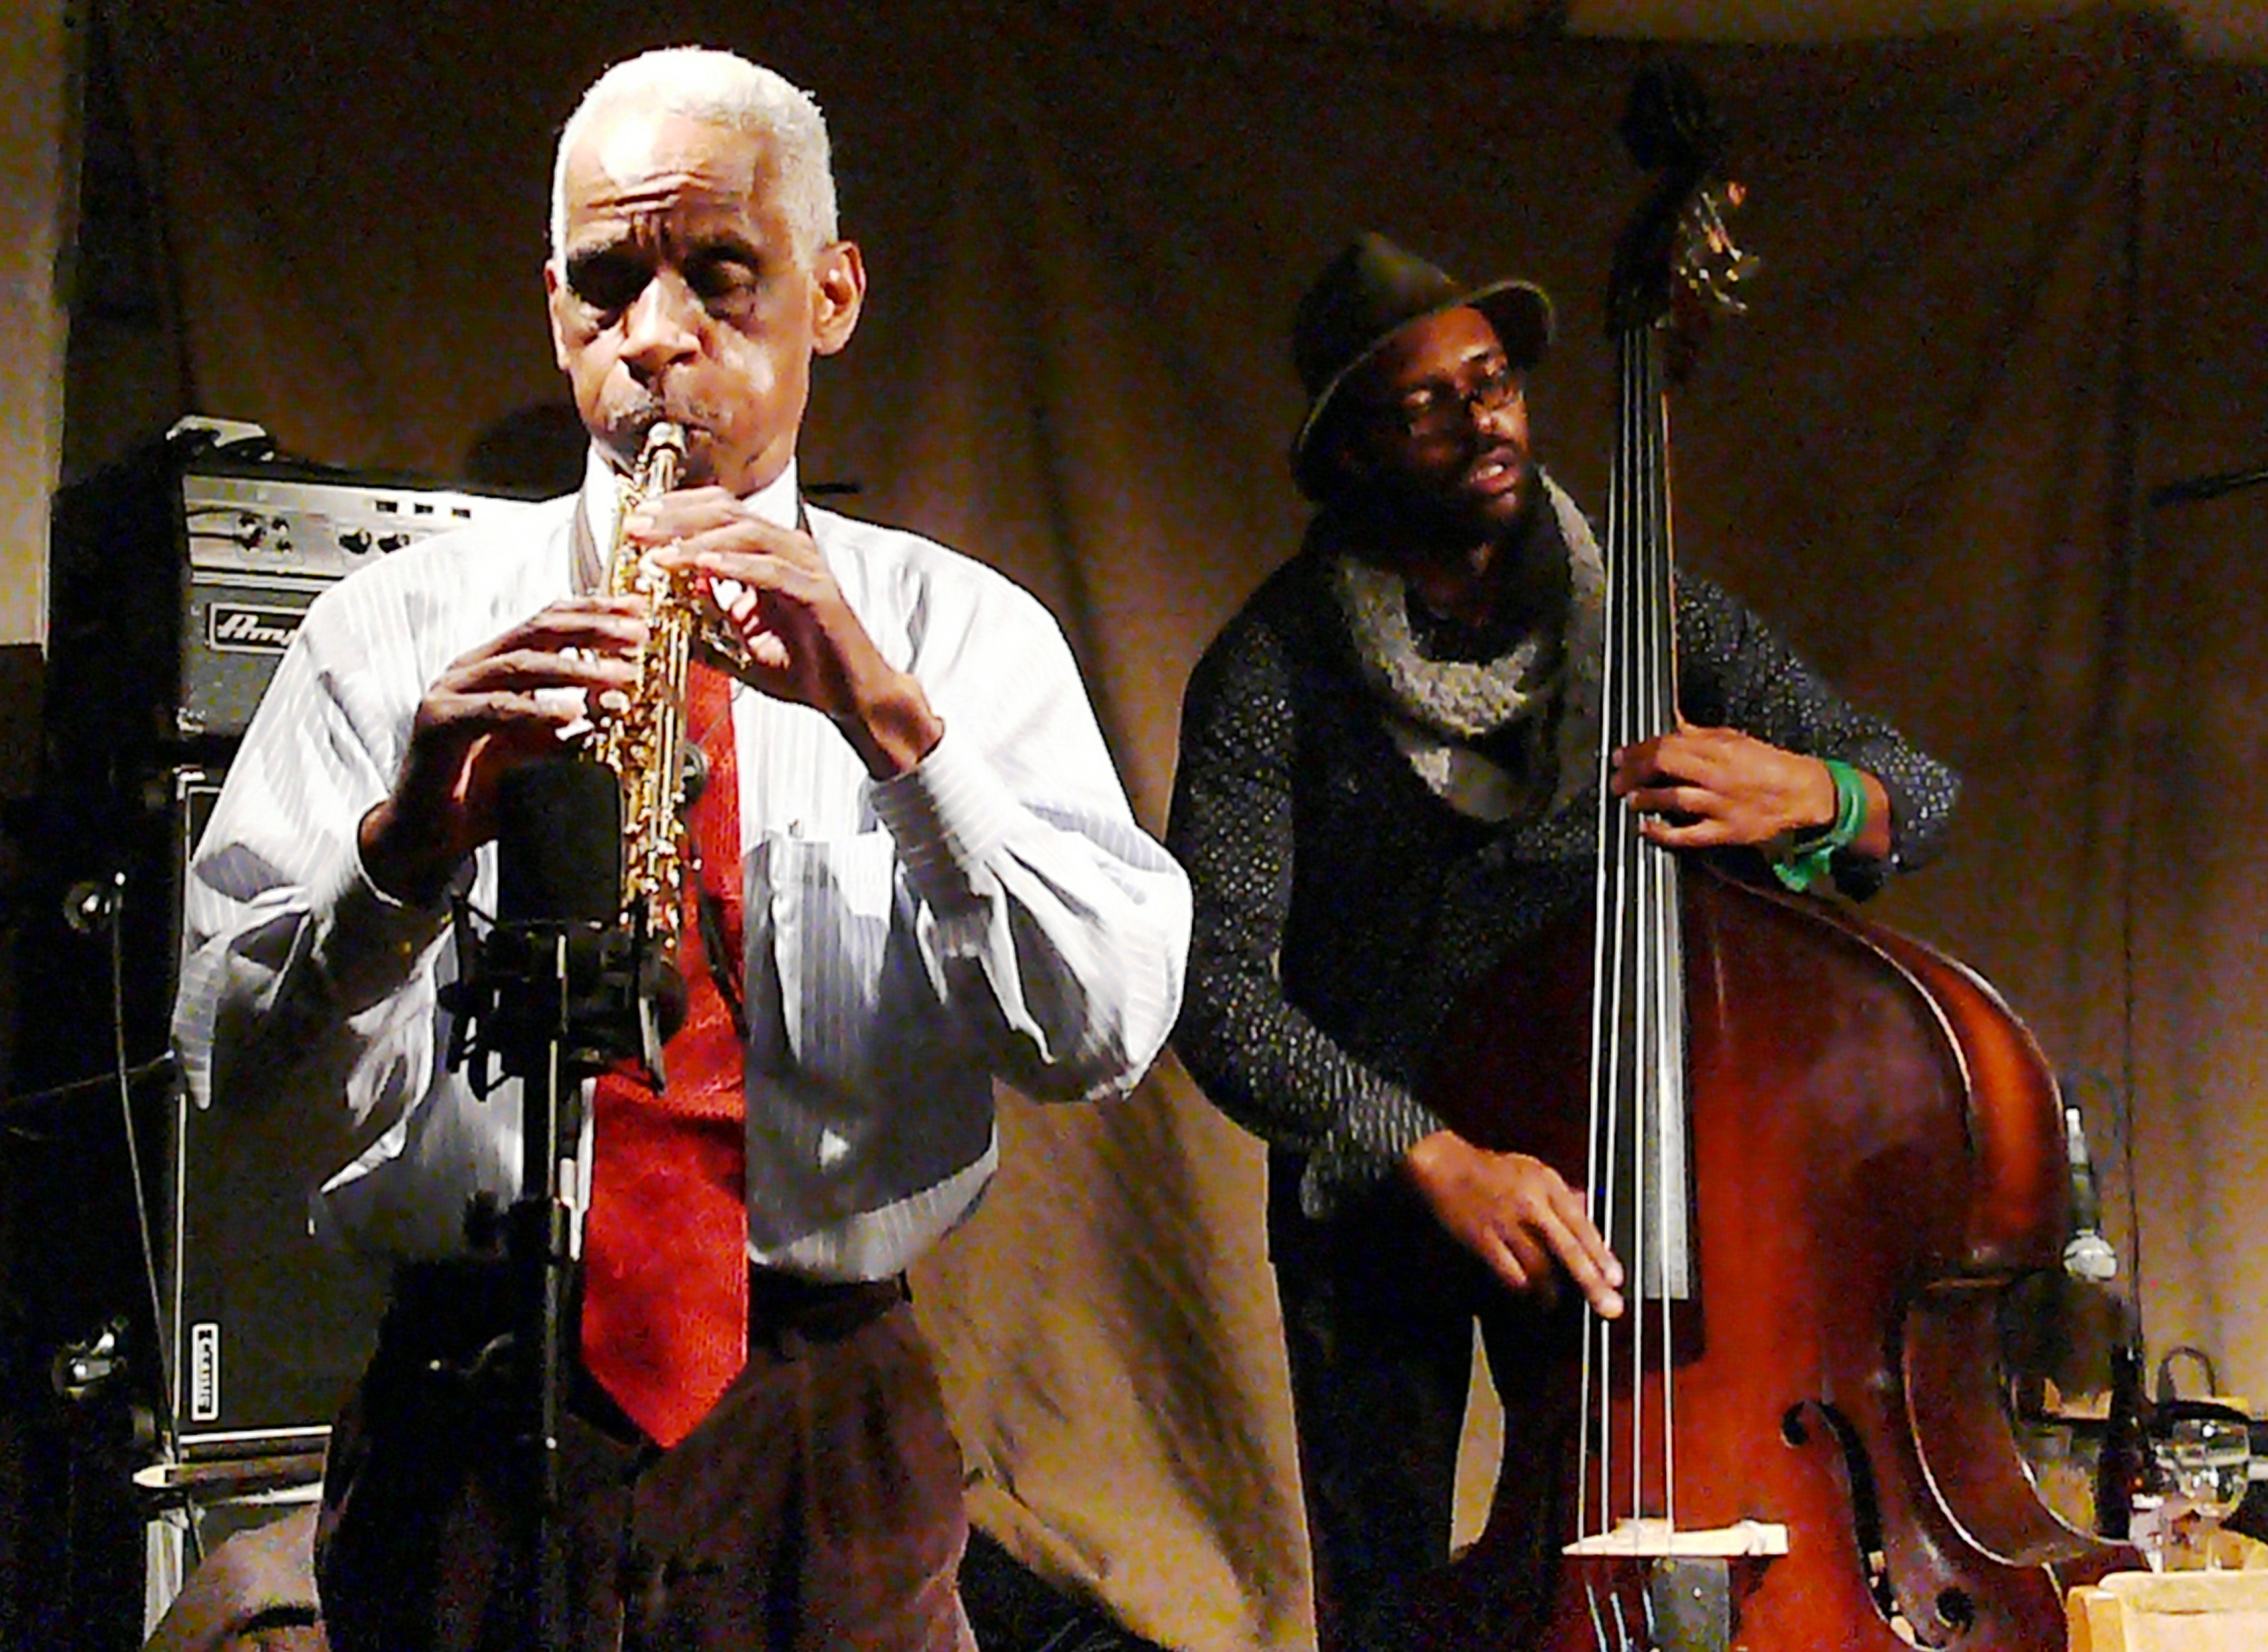 Roscoe Mitchell and Junius Paul at Cafe Oto, London in February 2017